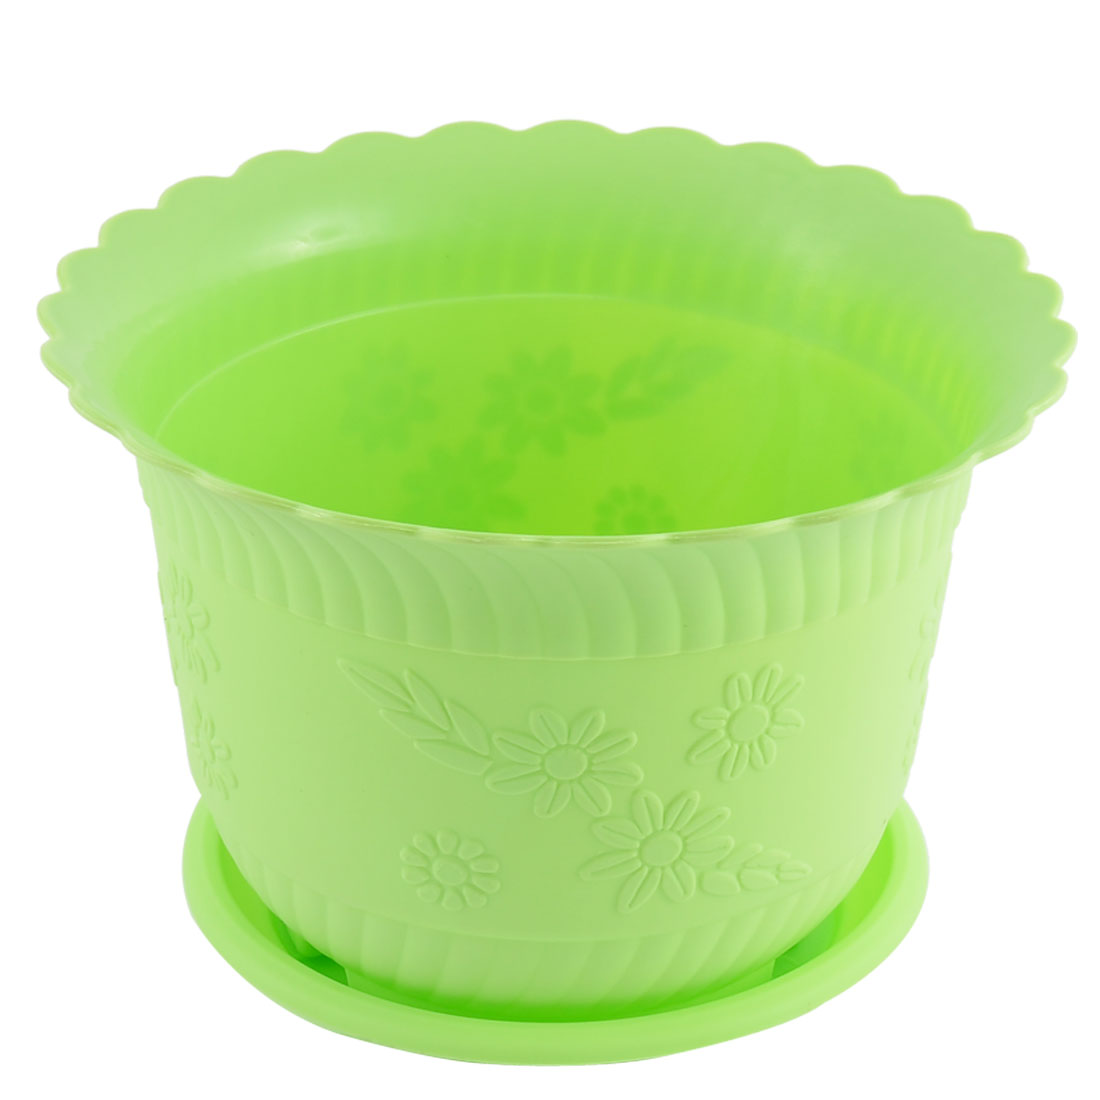 Home Office Garden Plastic Floral Pattern Cactus Aloe Plant Flower Pot Light Green w Tray